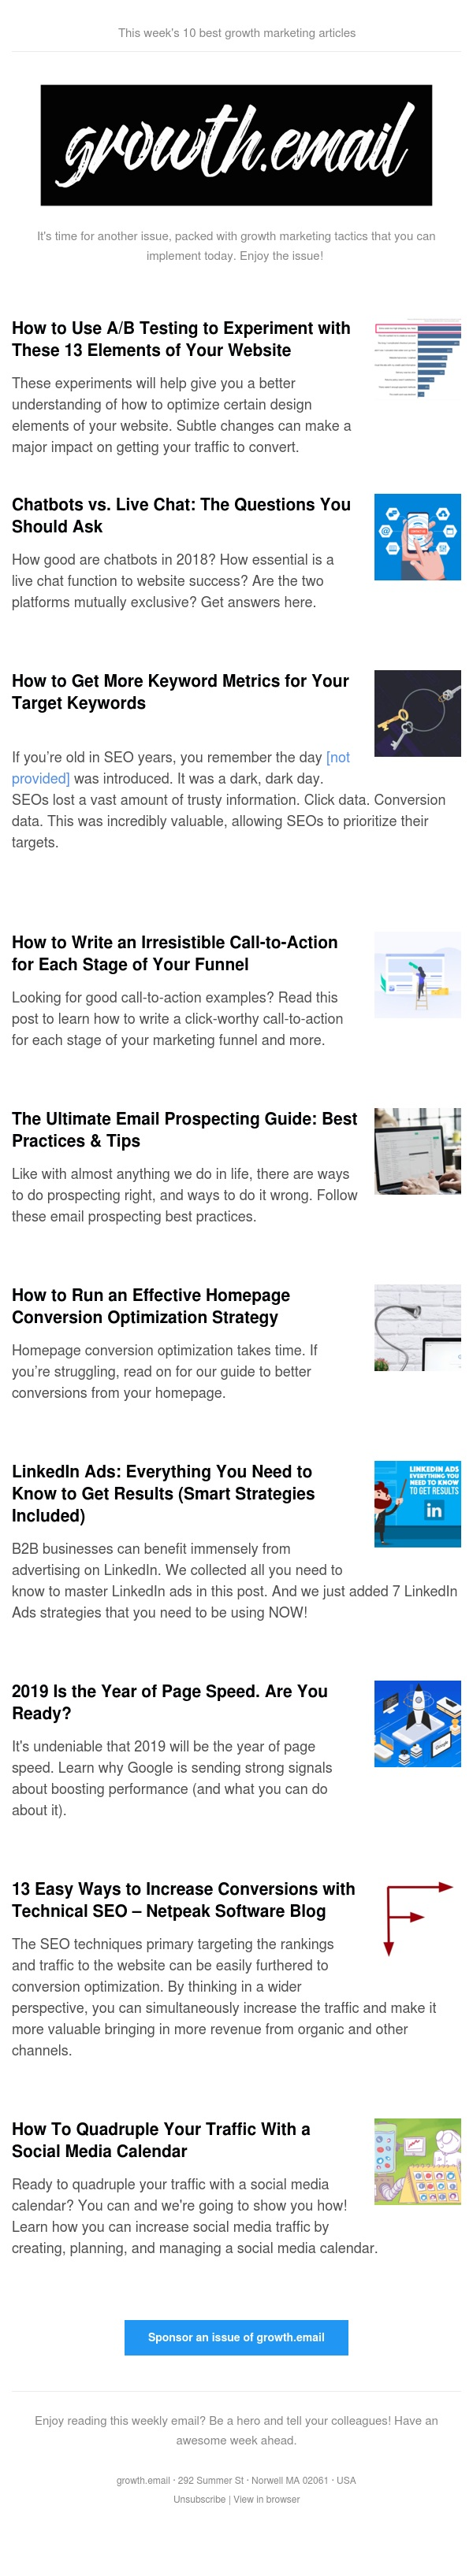 growth.email #83 Smart Linkedin Ads Strategies | Homepage Optimization Conversion Strategy | Increase Conversions with Technical SEO | The Ultimate Email Prospecting Guide